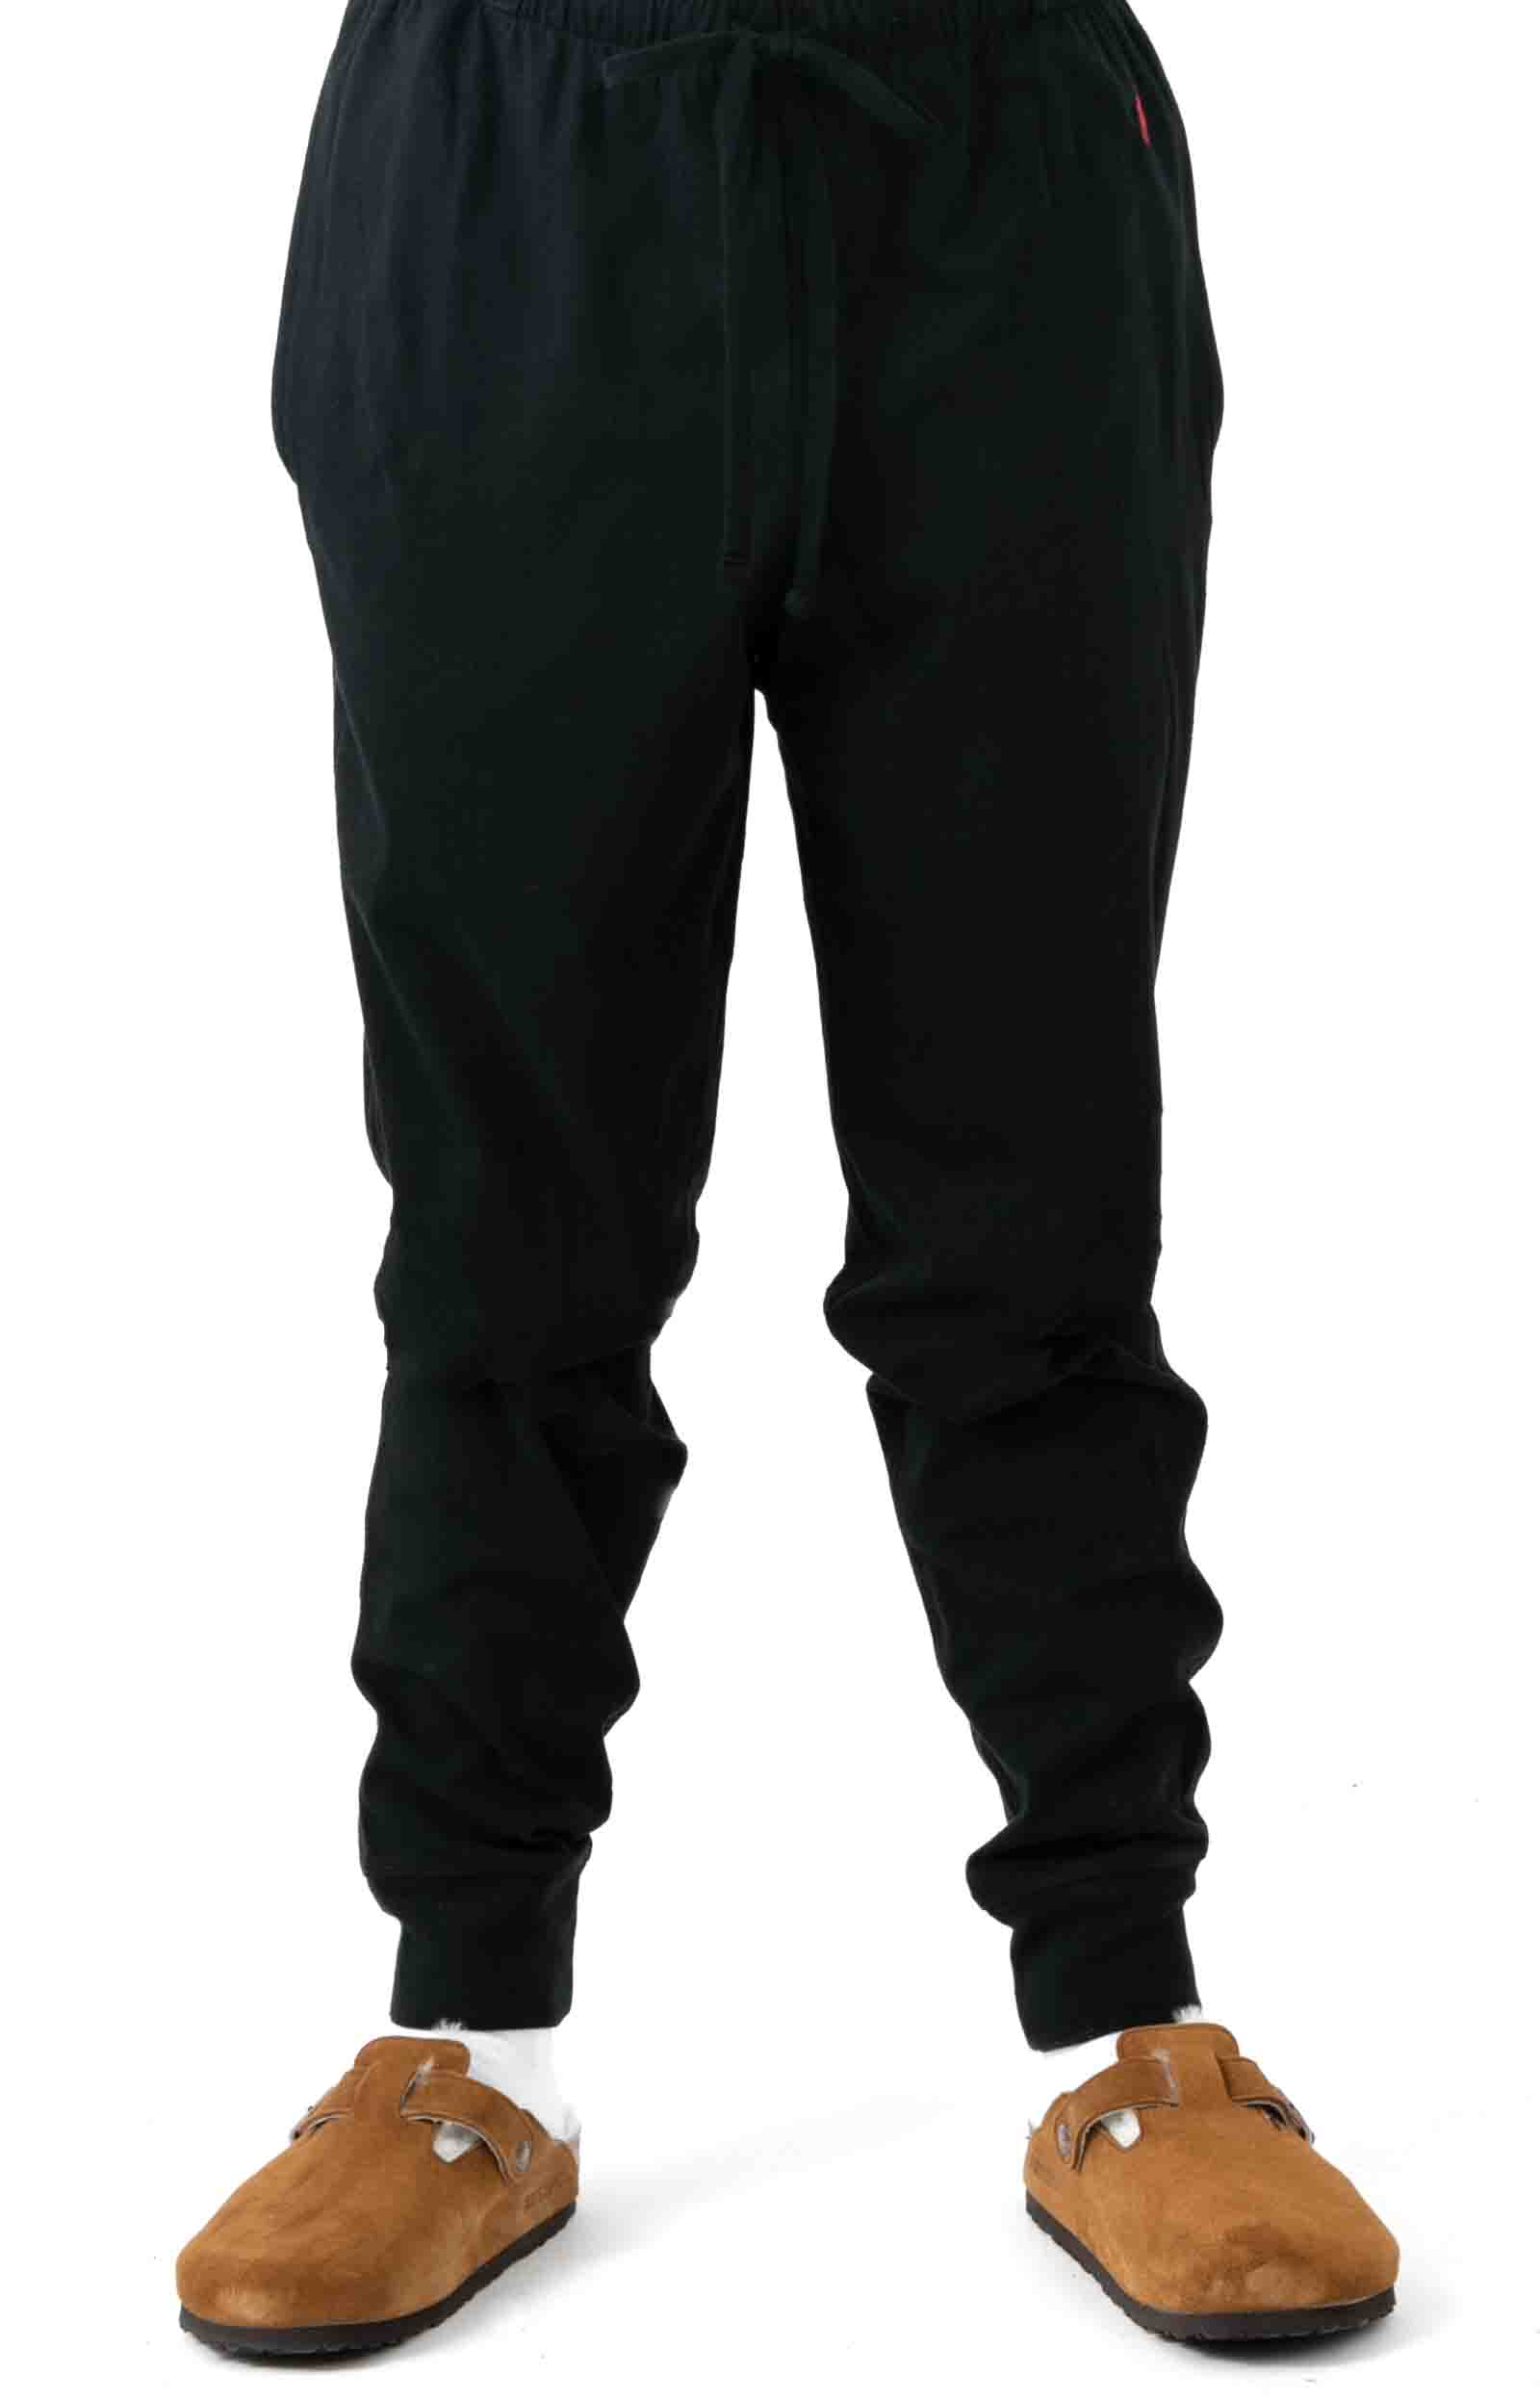 (L204PB) Relaxed Fit Jogger Cuff Sleep Pant - Polo Black  2